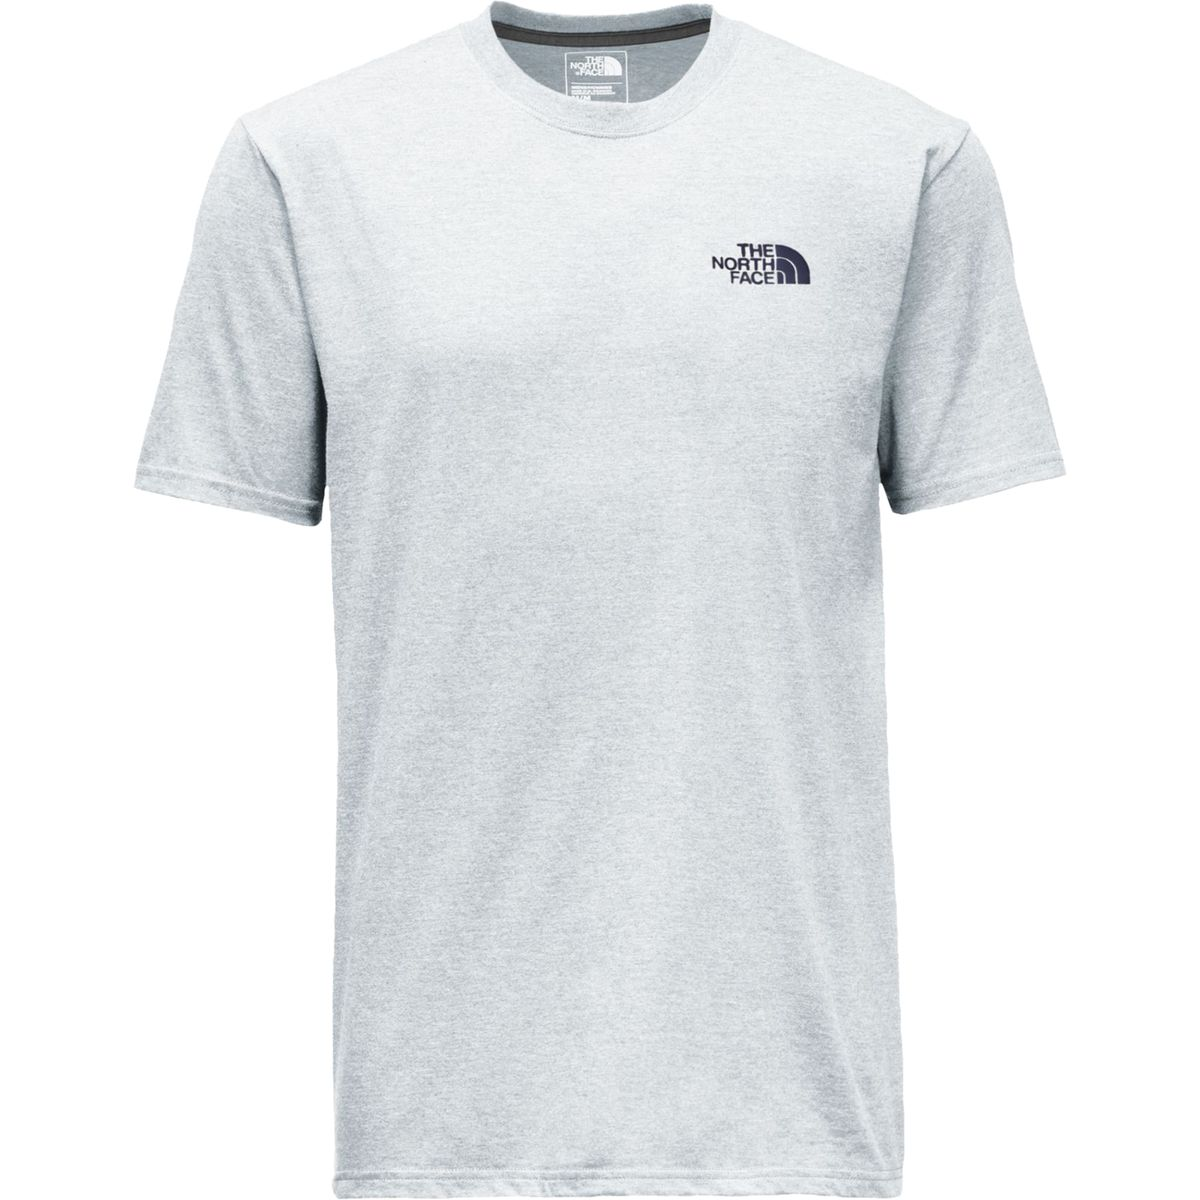 The North Face Red Box T-Shirt - Short-Sleeve - Men